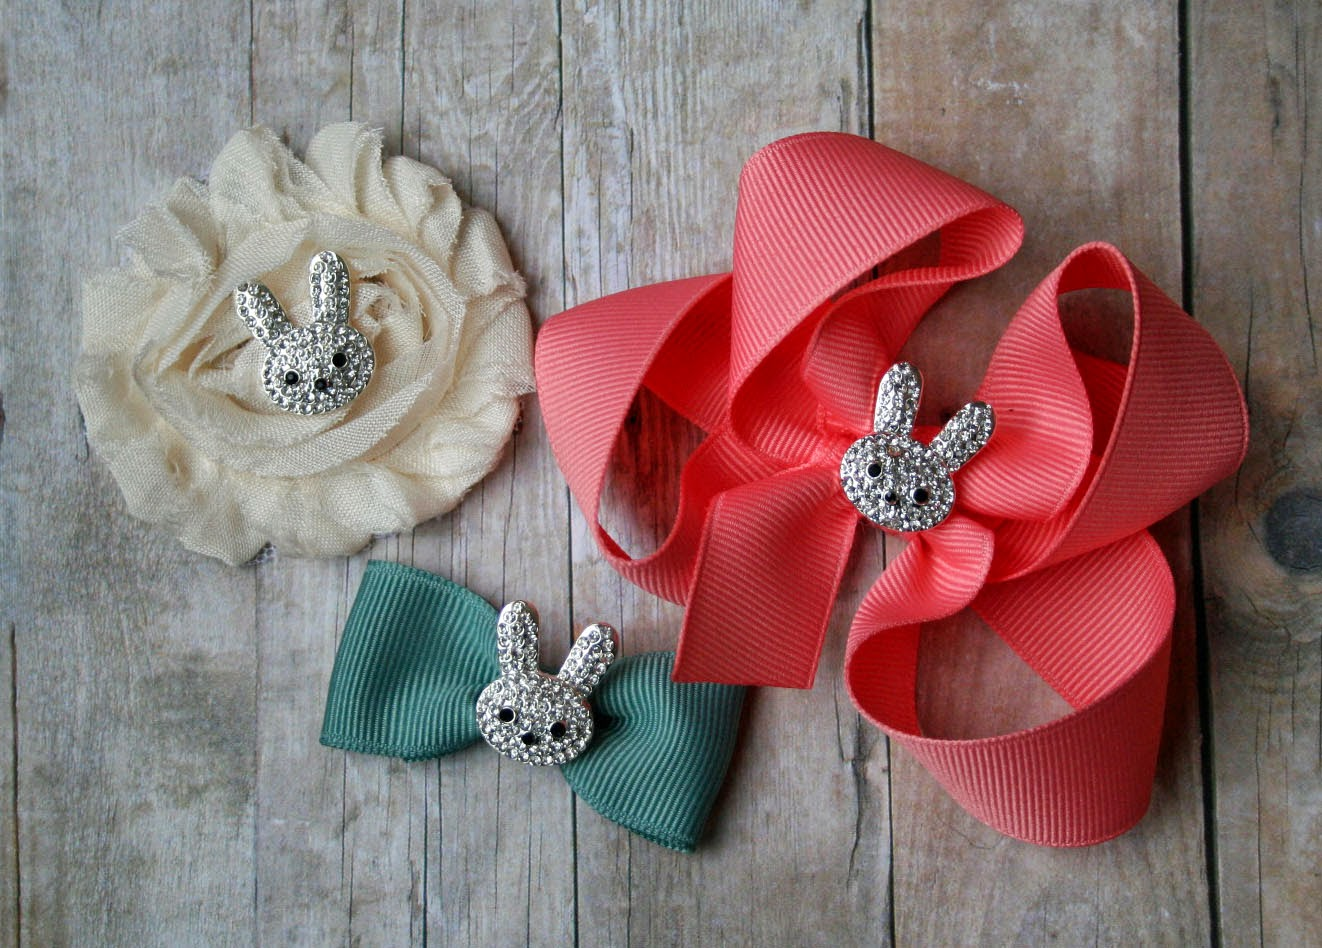 http://www.thebowtique.com/store/WsPCollectionsDet.asp?ID=3&pID=1